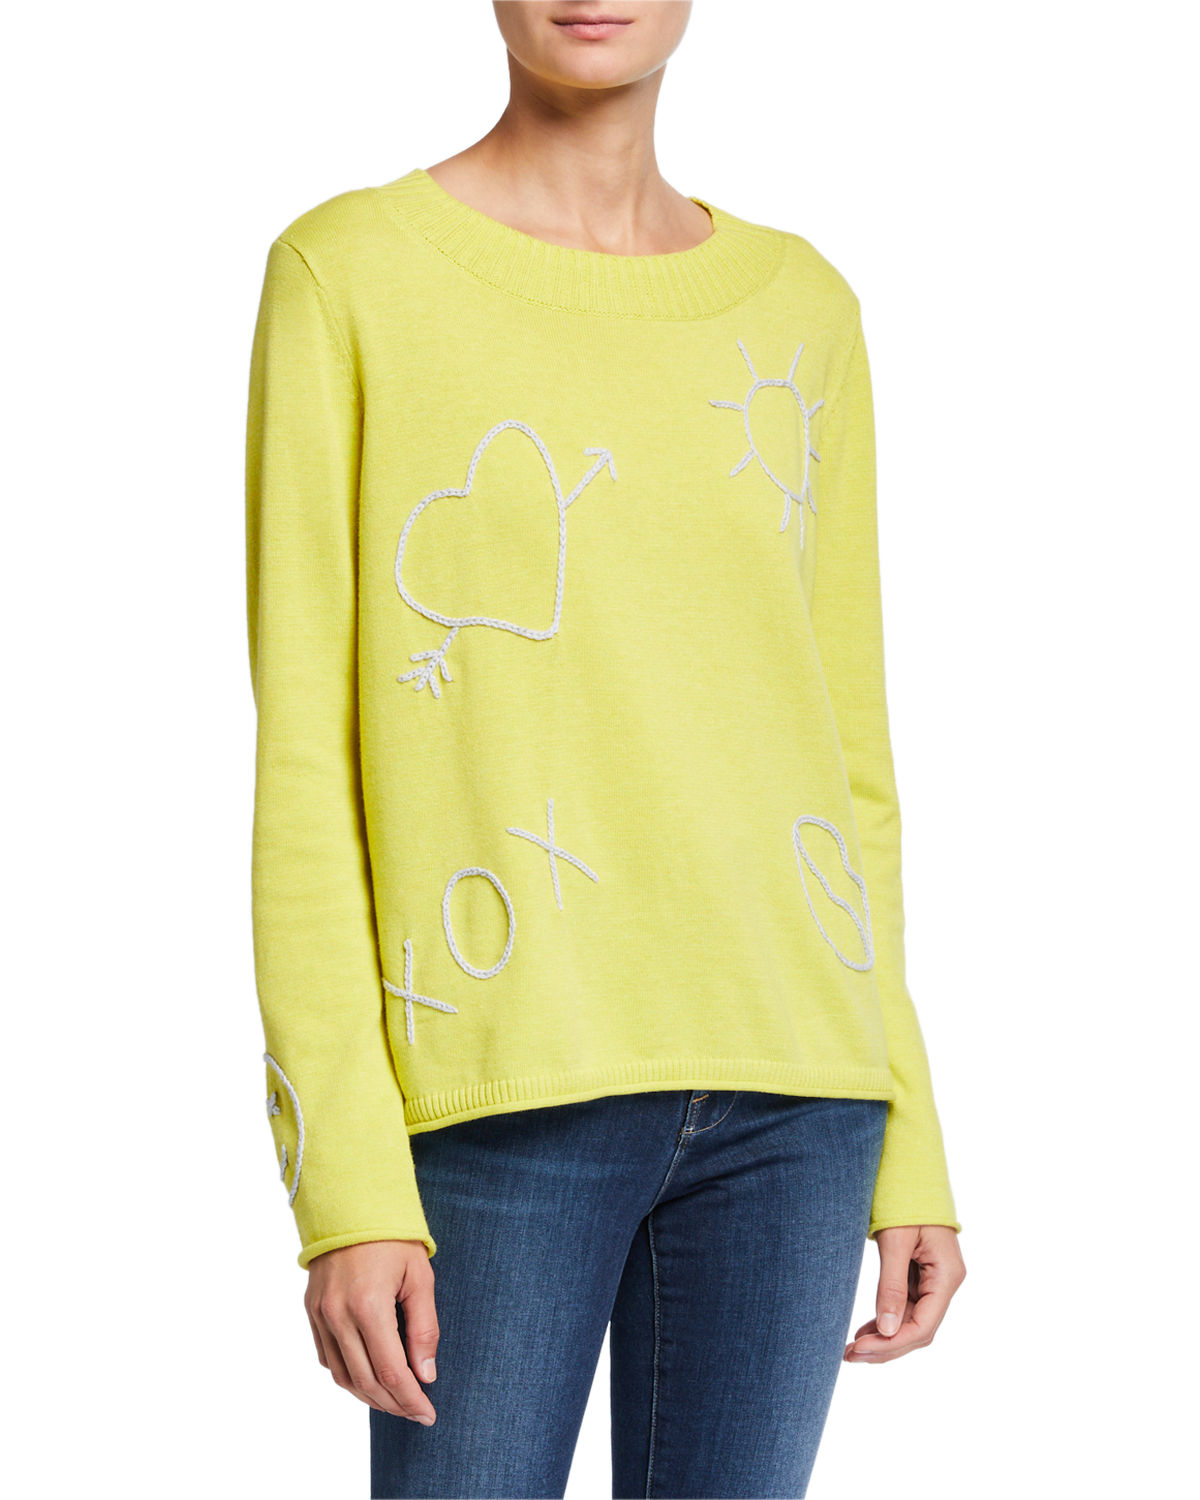 Lisa Todd PLUS SIZE LIFE IS GOOD STITCH DETAIL LONG-SLEEVE COTTON SWEATER